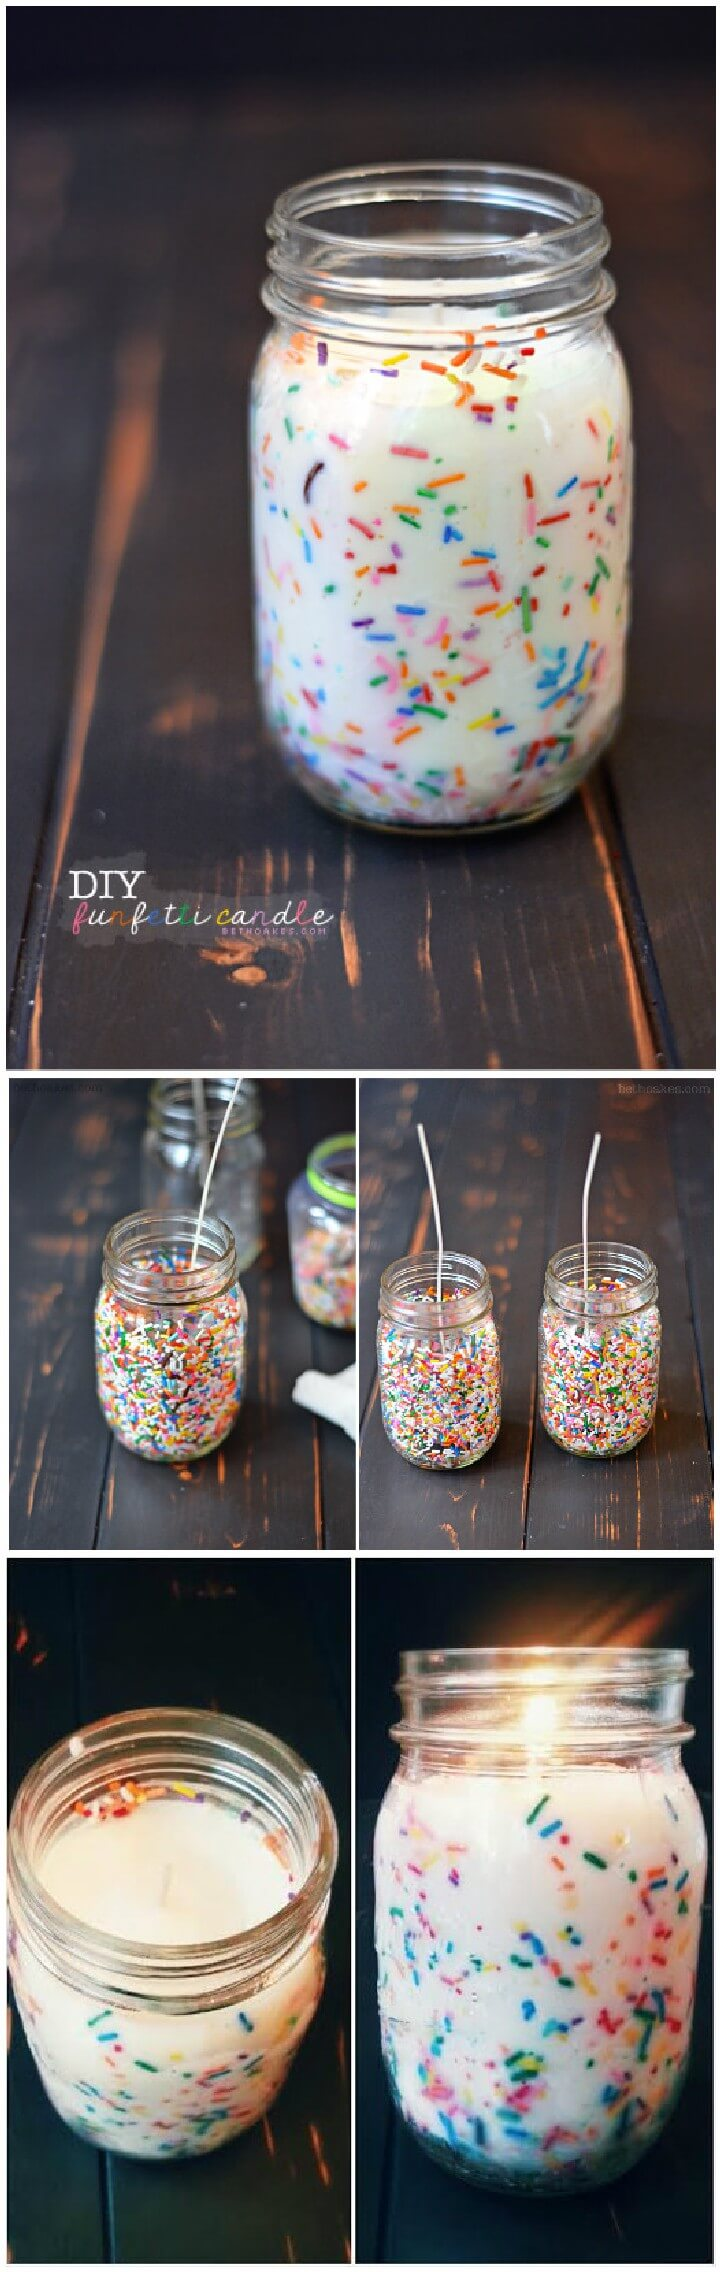 160 diy mason jar crafts and gift ideas page 7 of 17 for Mason jar candle crafts